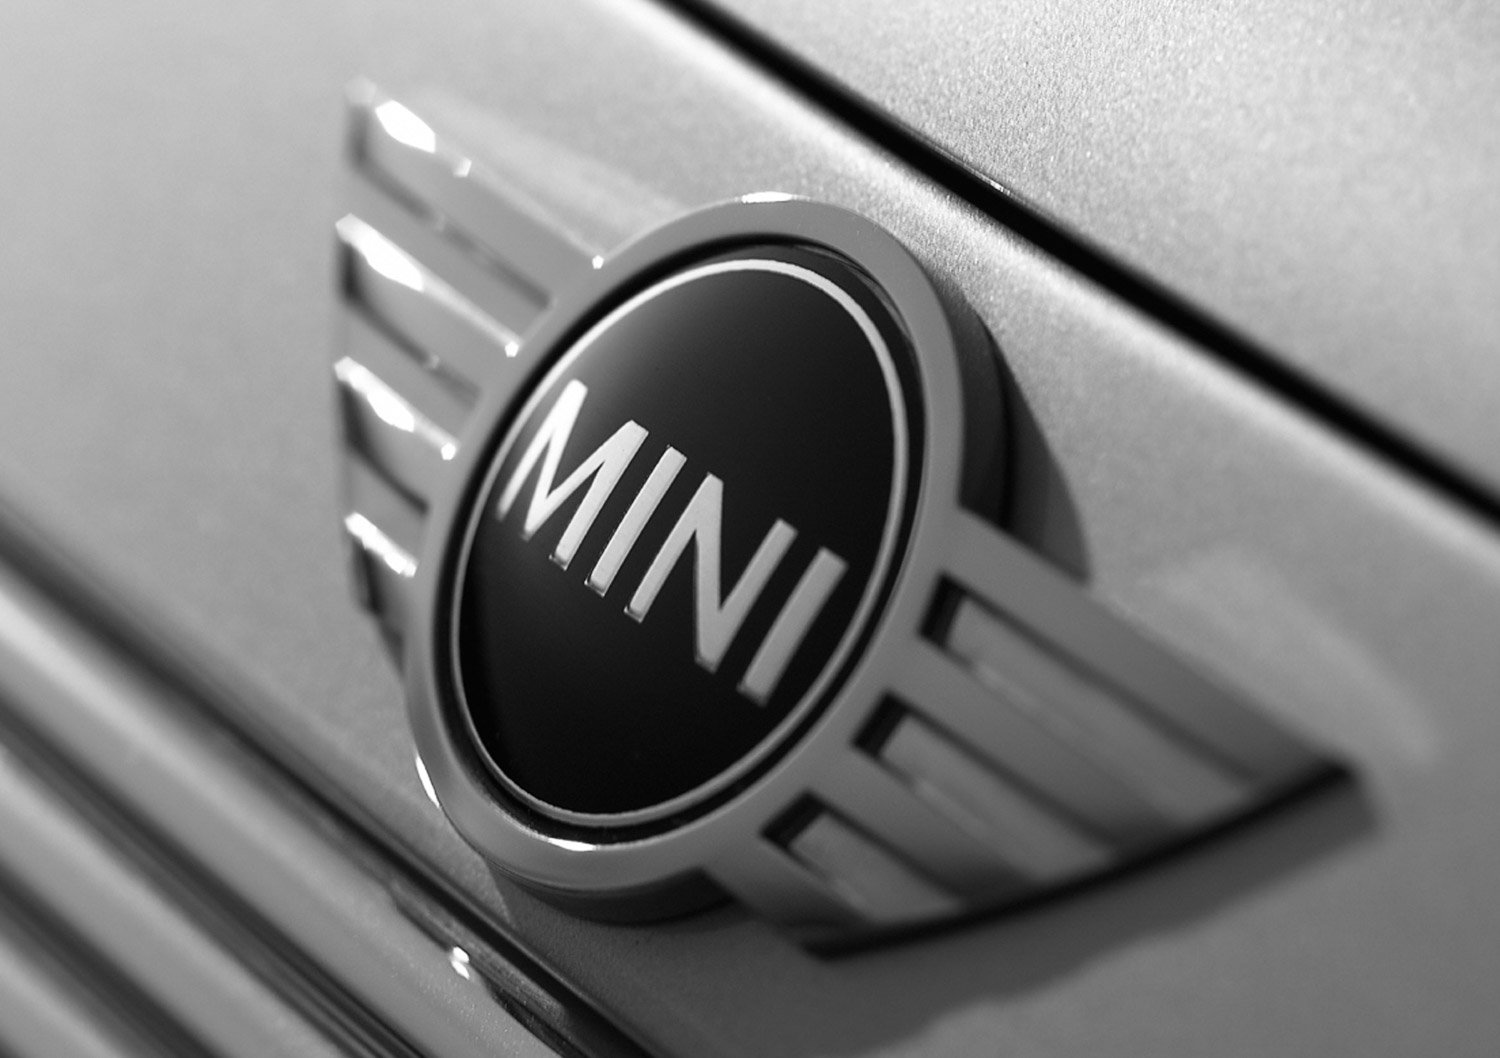 027_Mini_badge